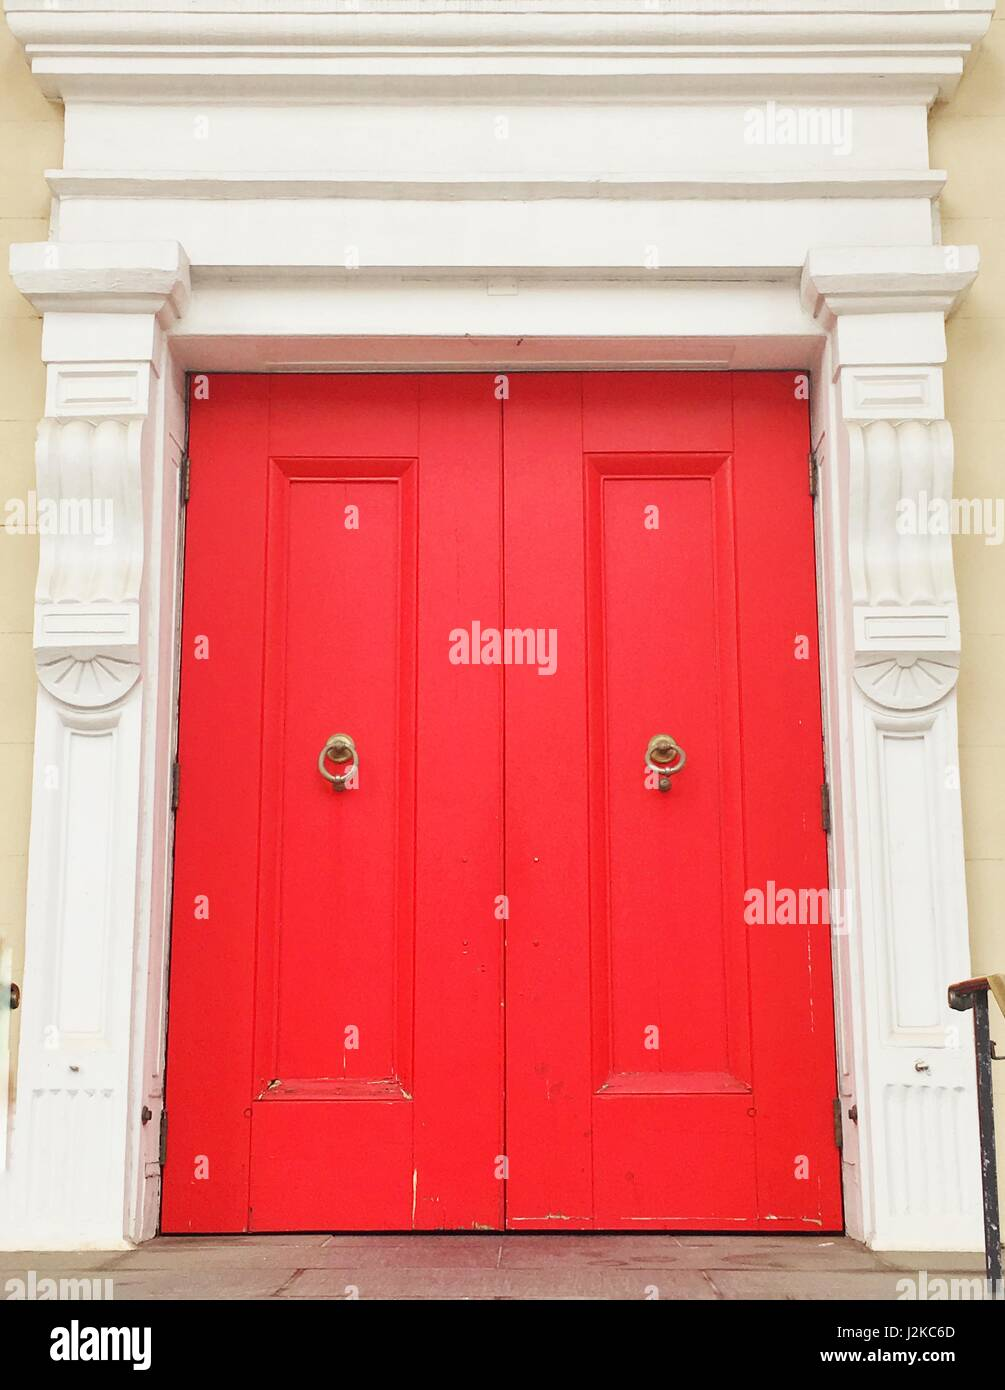 Red double doors on a white building. - Stock Image